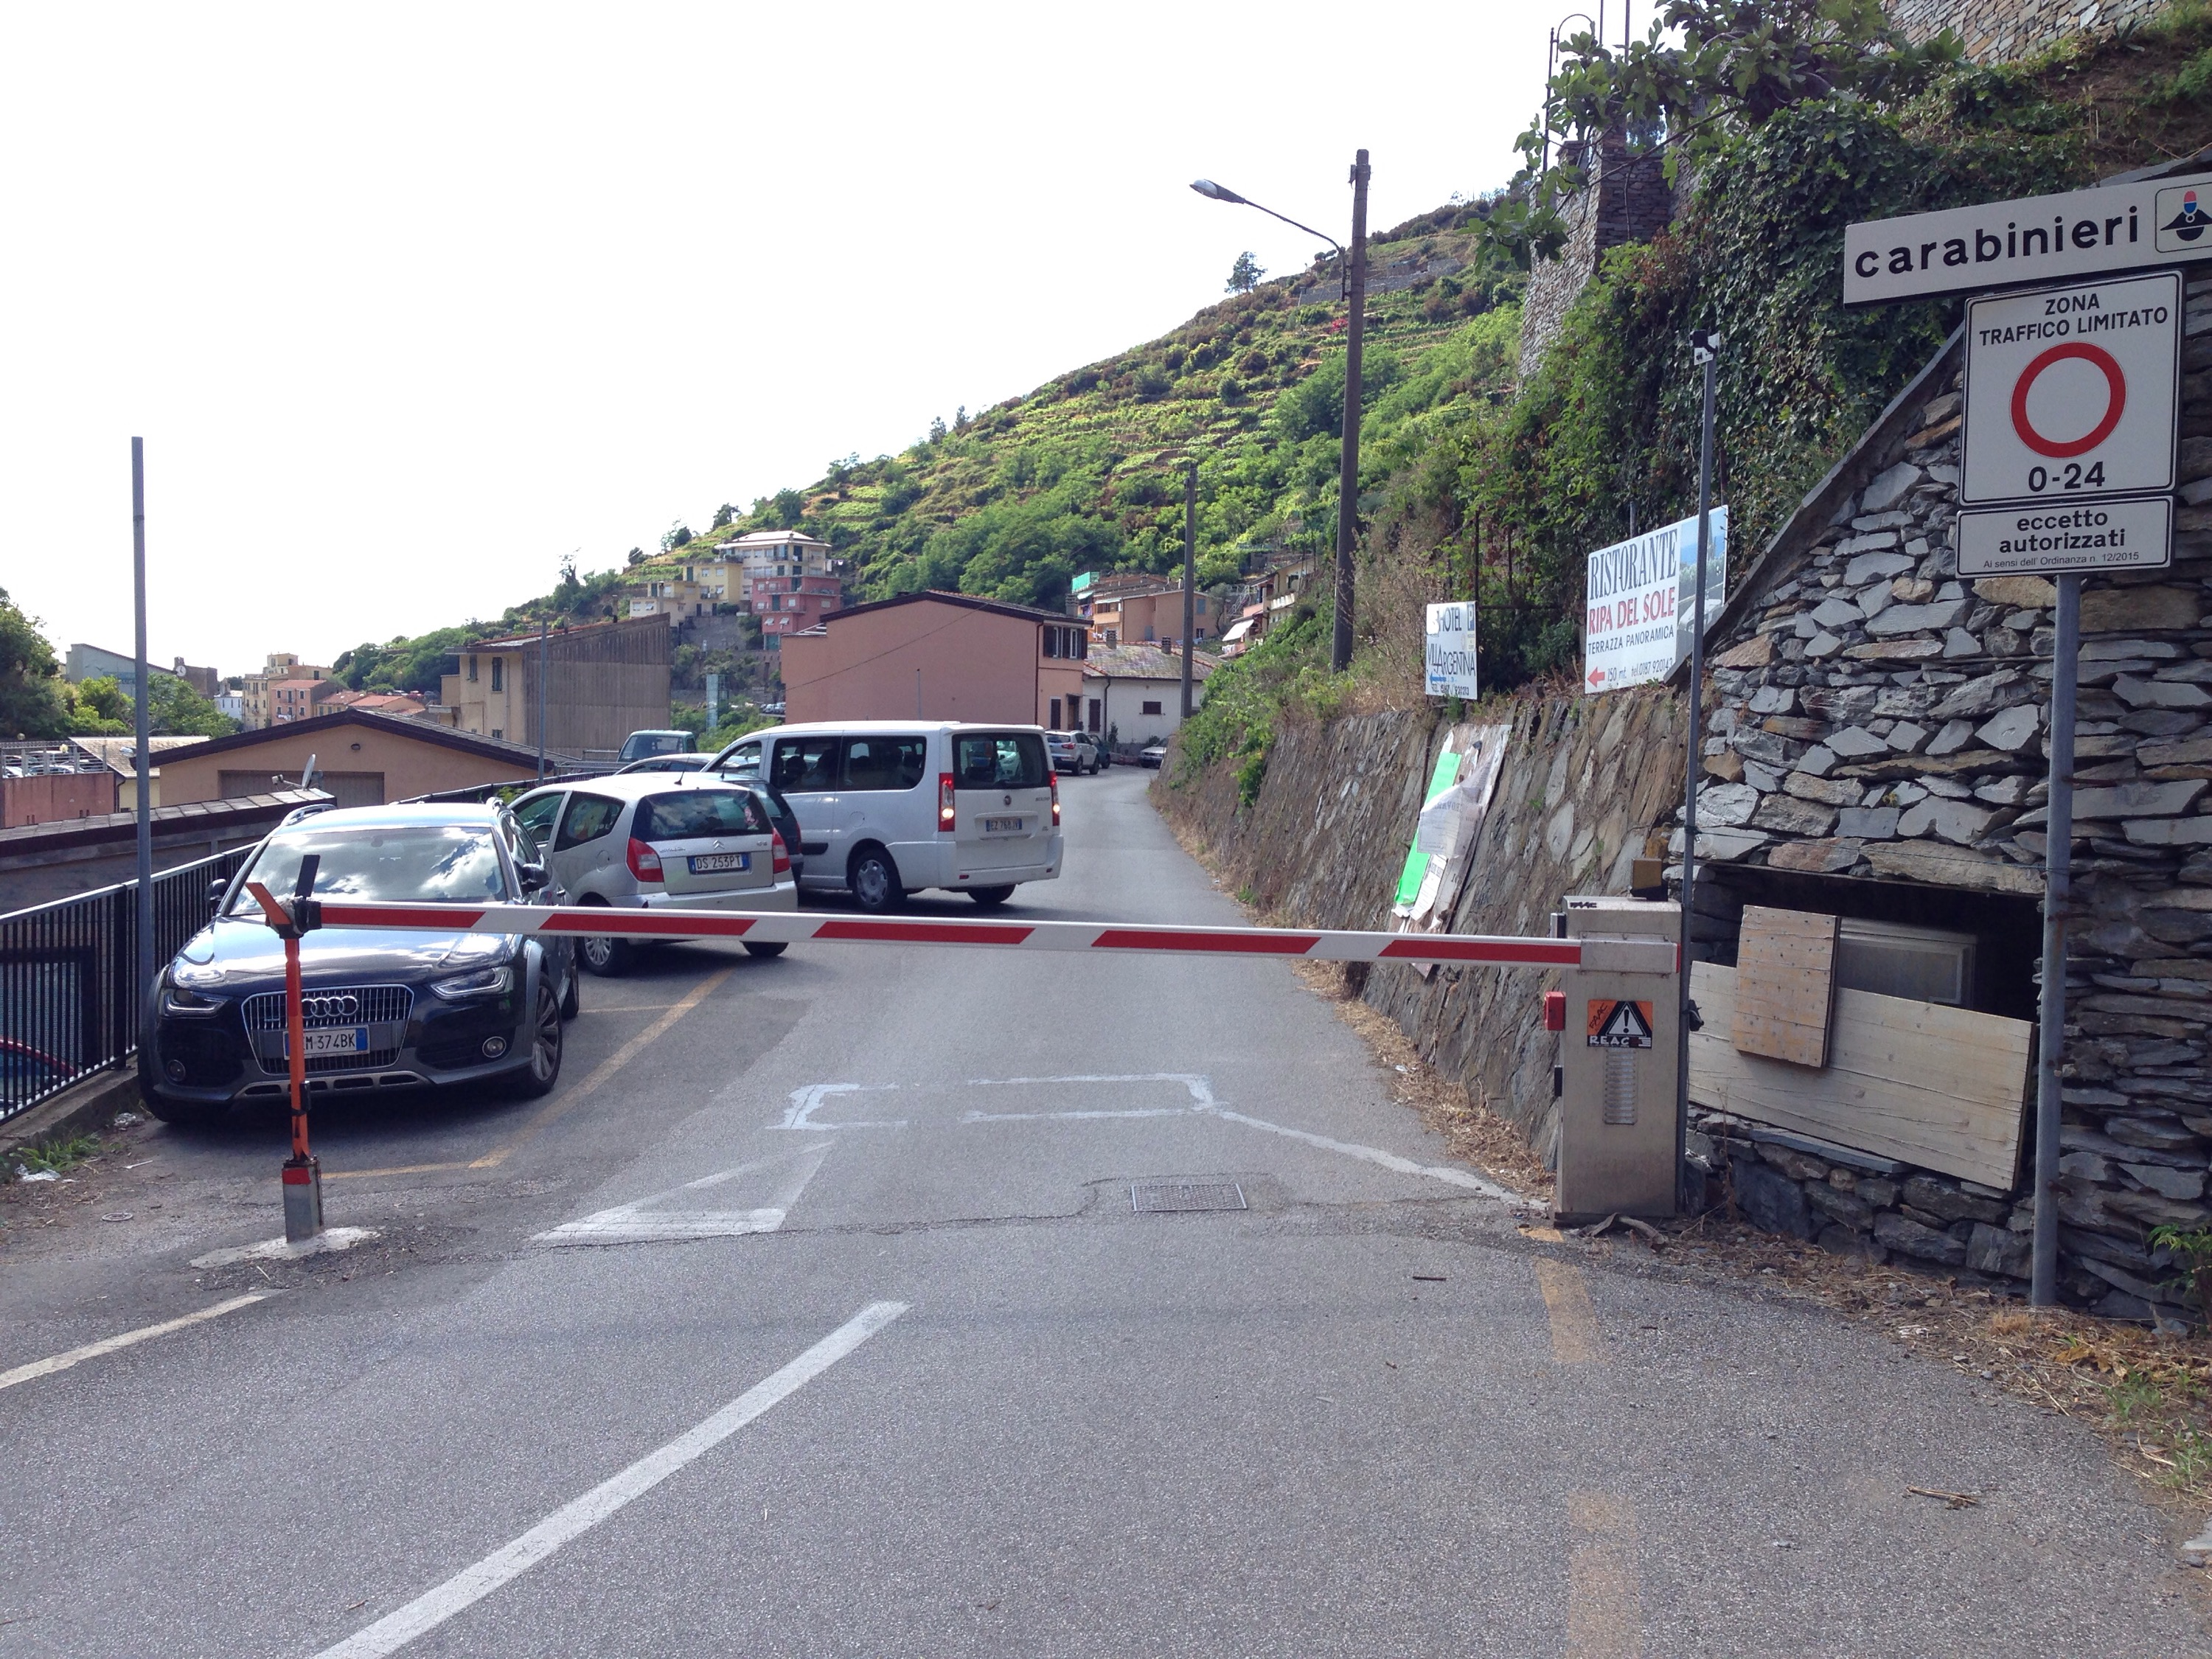 √ How to avoid a €122 parking ticket in the Cinque Terre